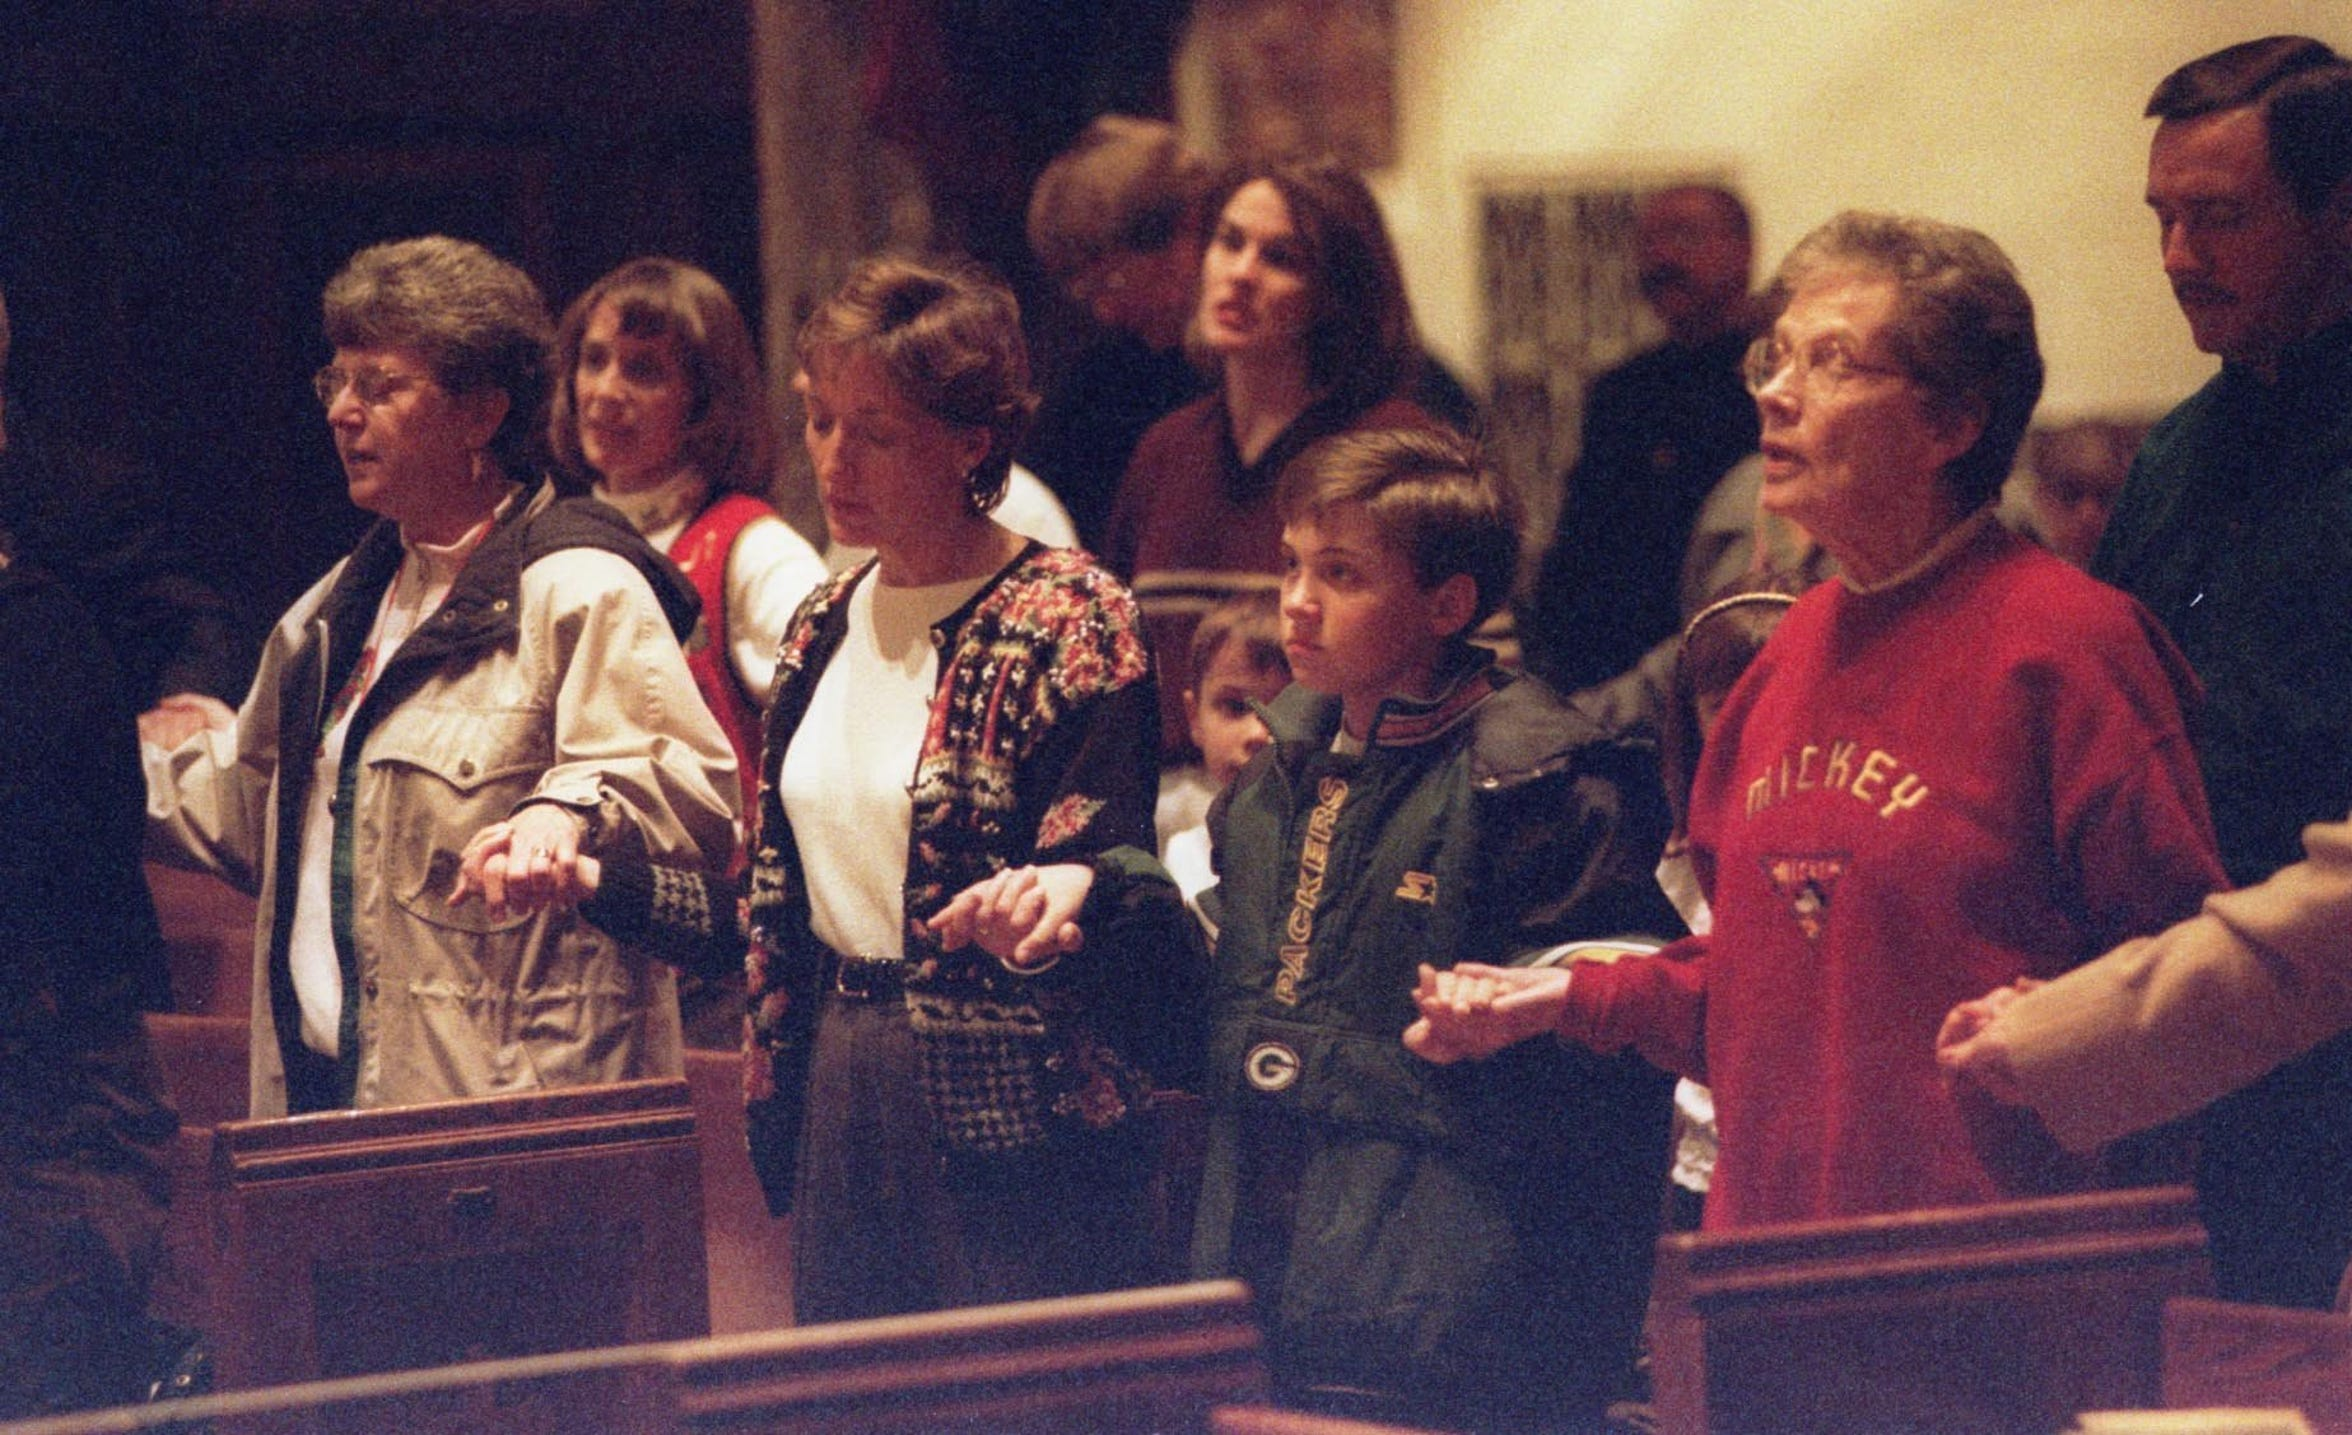 Parishioners joined hands across the center aisle and prayed during a service the evening of Dec. 11, 1998 at St. Mary's Cathedral in downtown St. Cloud for victims of the explosion that leveled the Bellantti's Pizza & Deli building Friday morning.